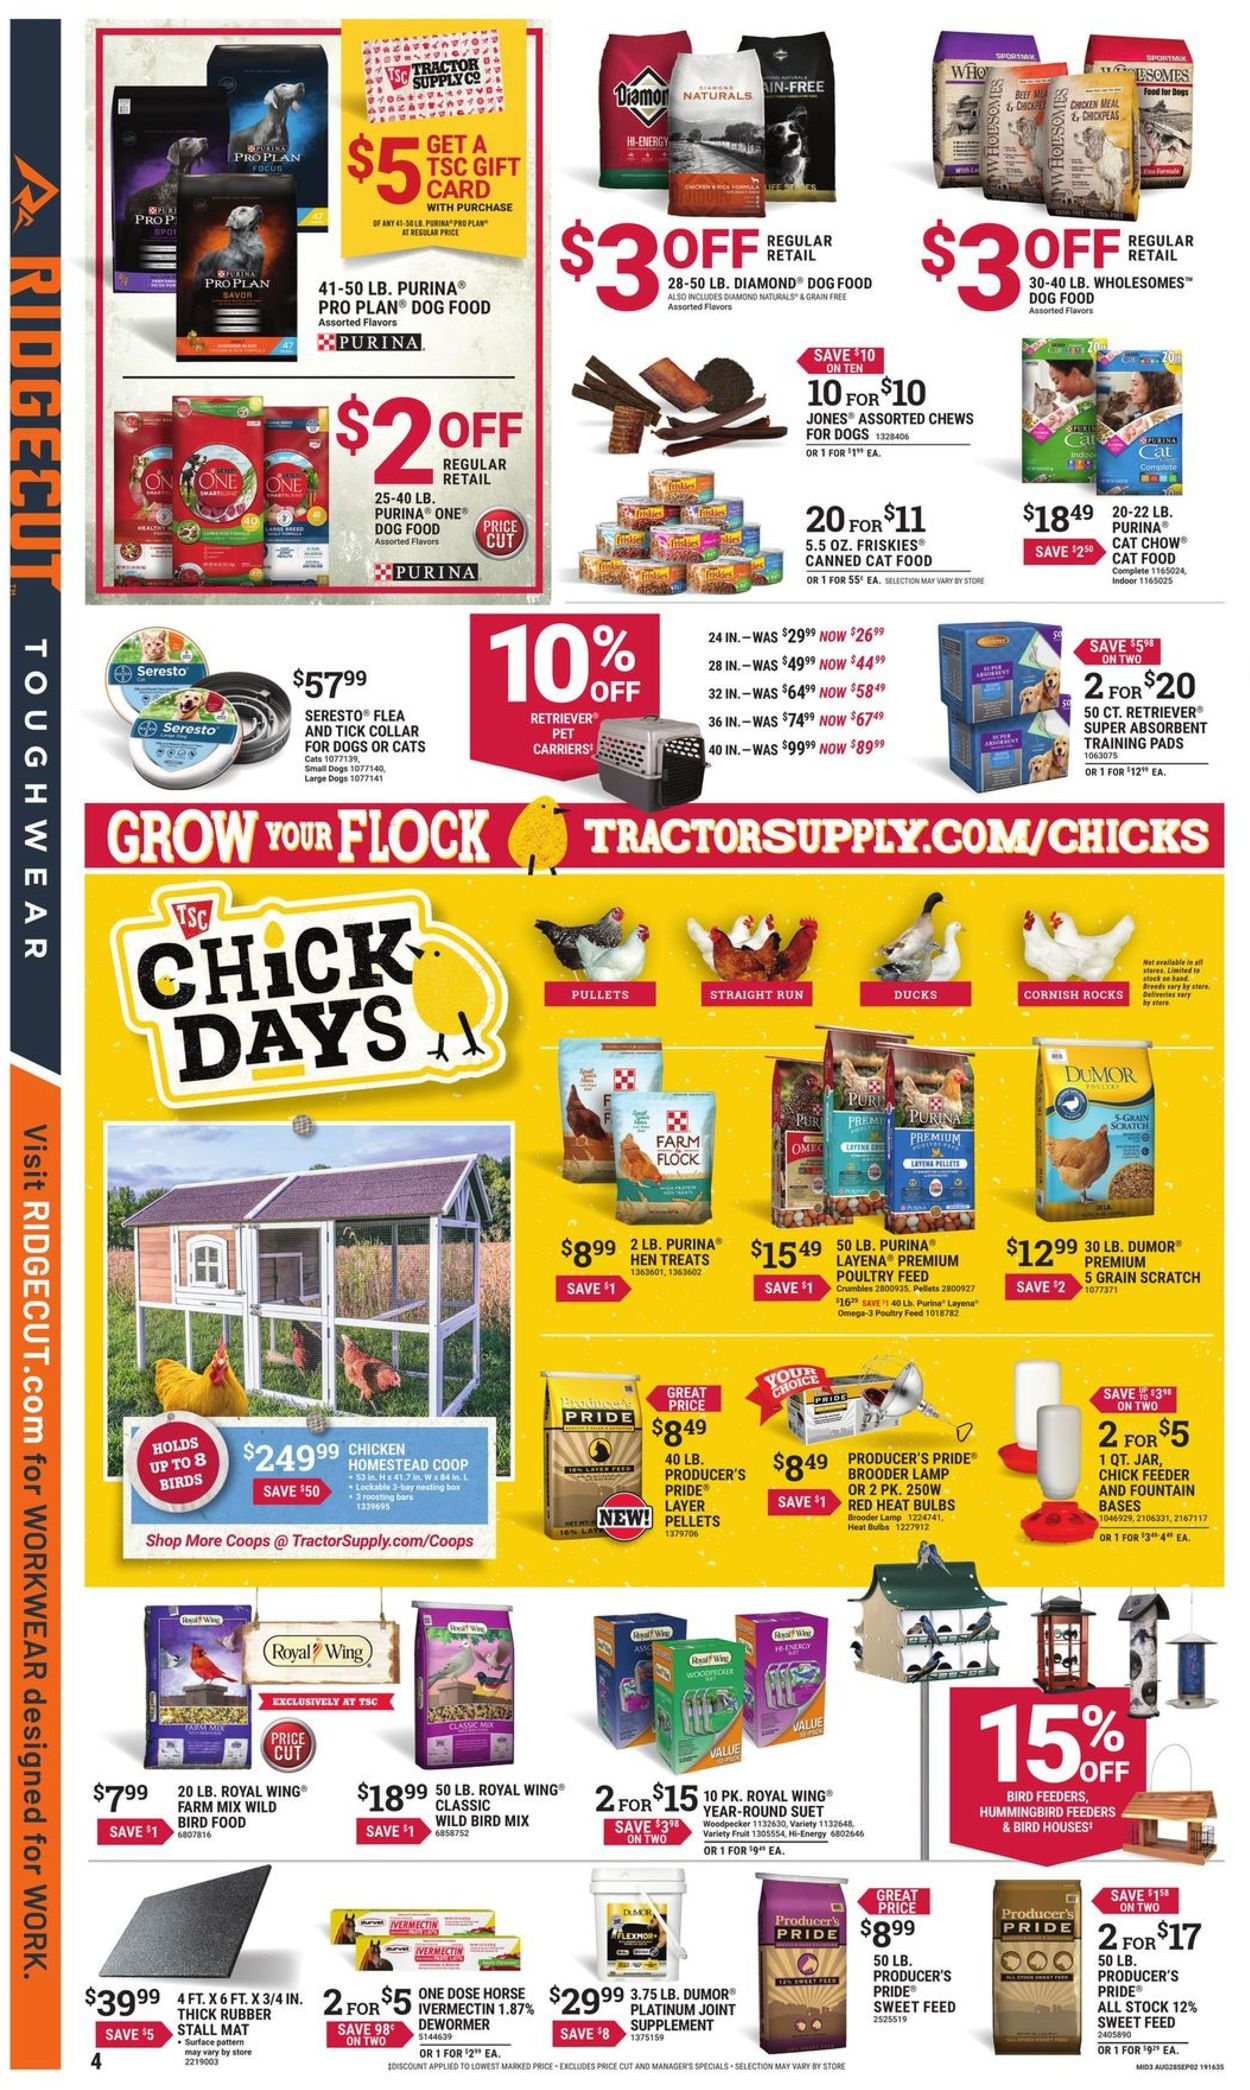 Tractor Supply Current Weekly Ad 08 28 09 02 2019 4